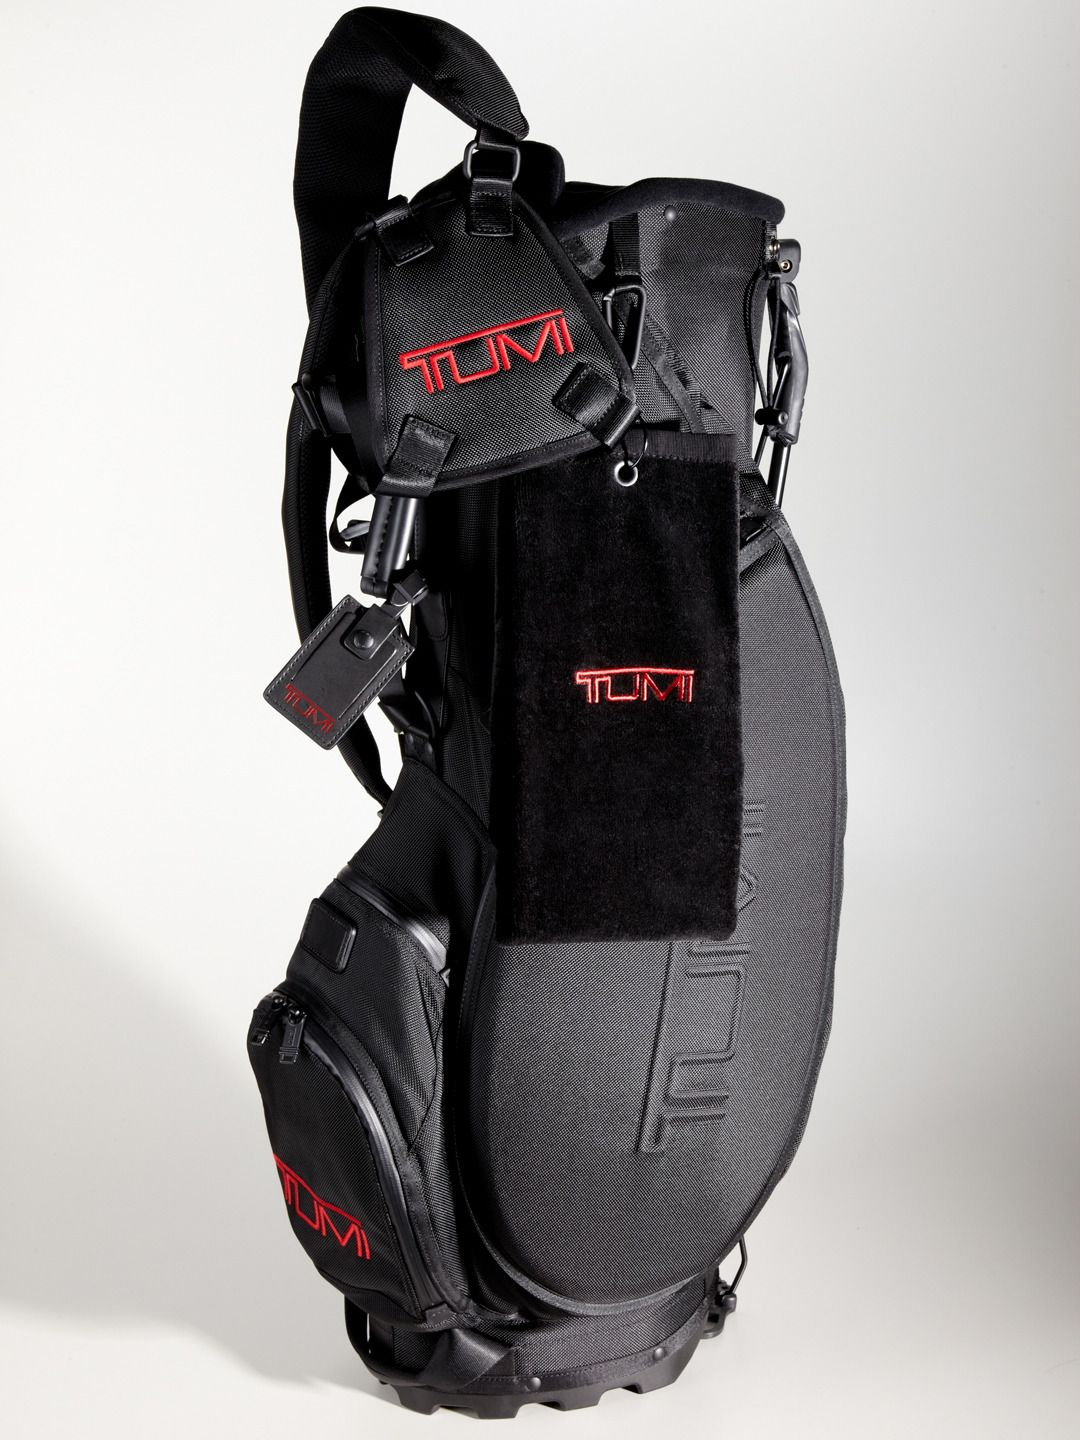 Need a golf bag, but this is discontinued. Maybe I'll find